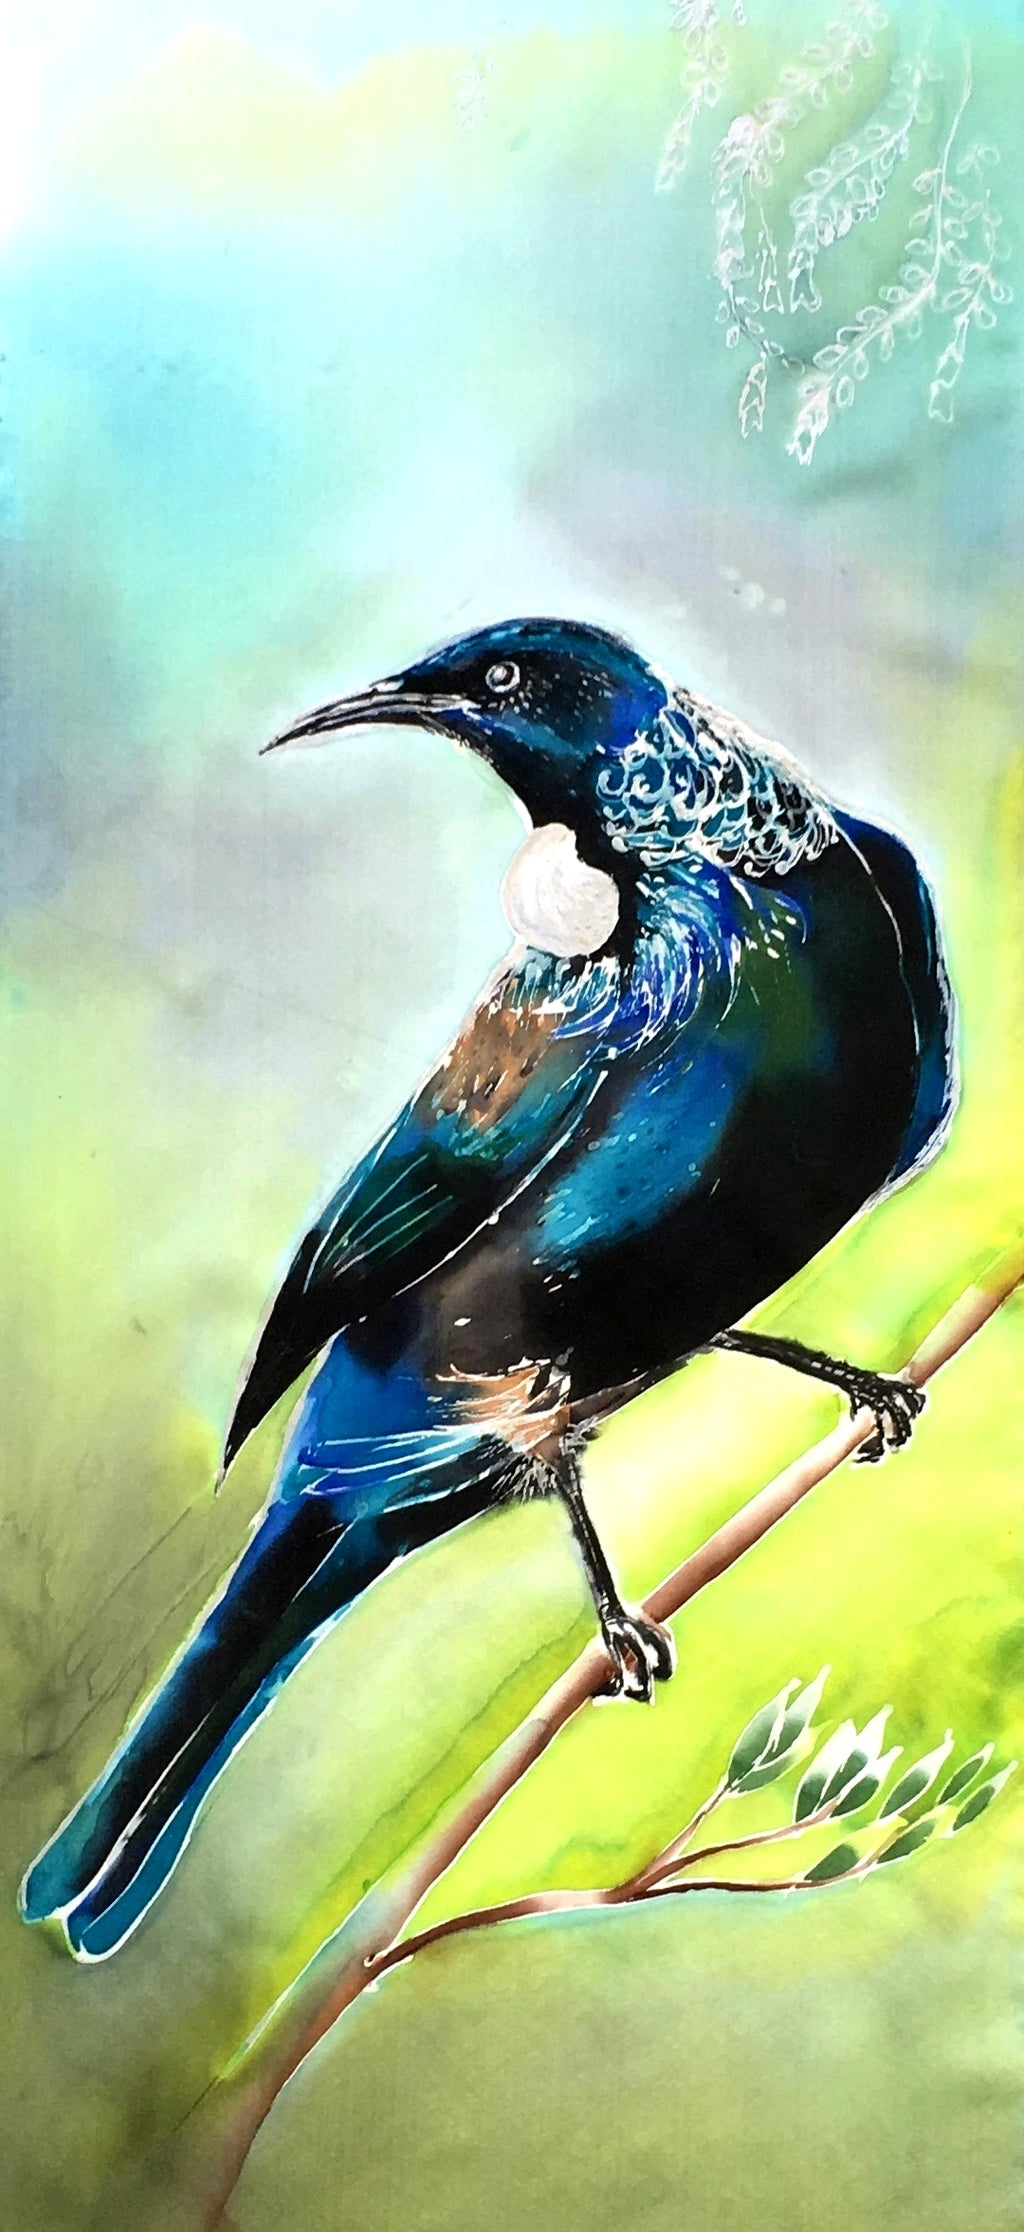 New Zealand Tui Bird - Outdoor Garden Art Panel - Satherley Silks NZ